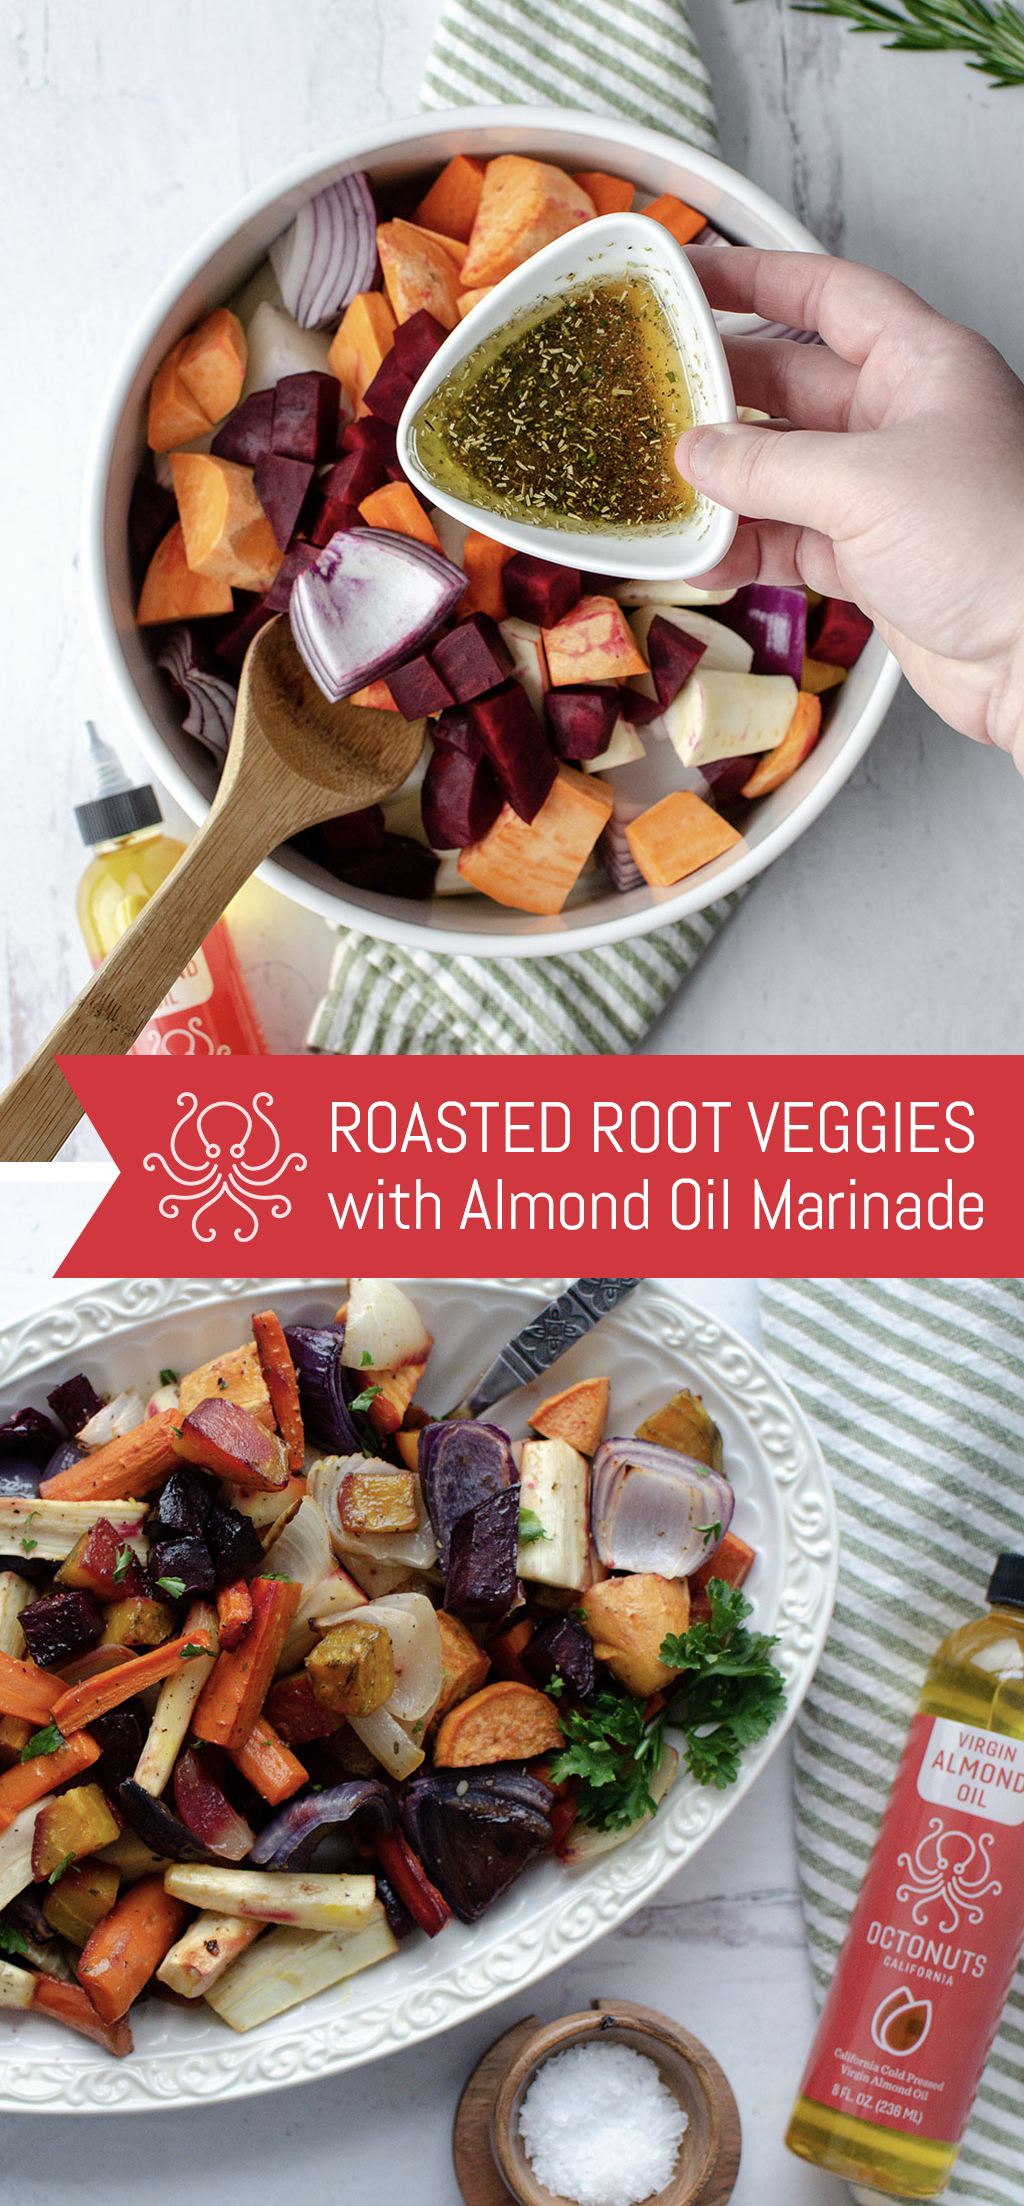 Roasted Root Veggies with Octonuts Almond Oil Marinade